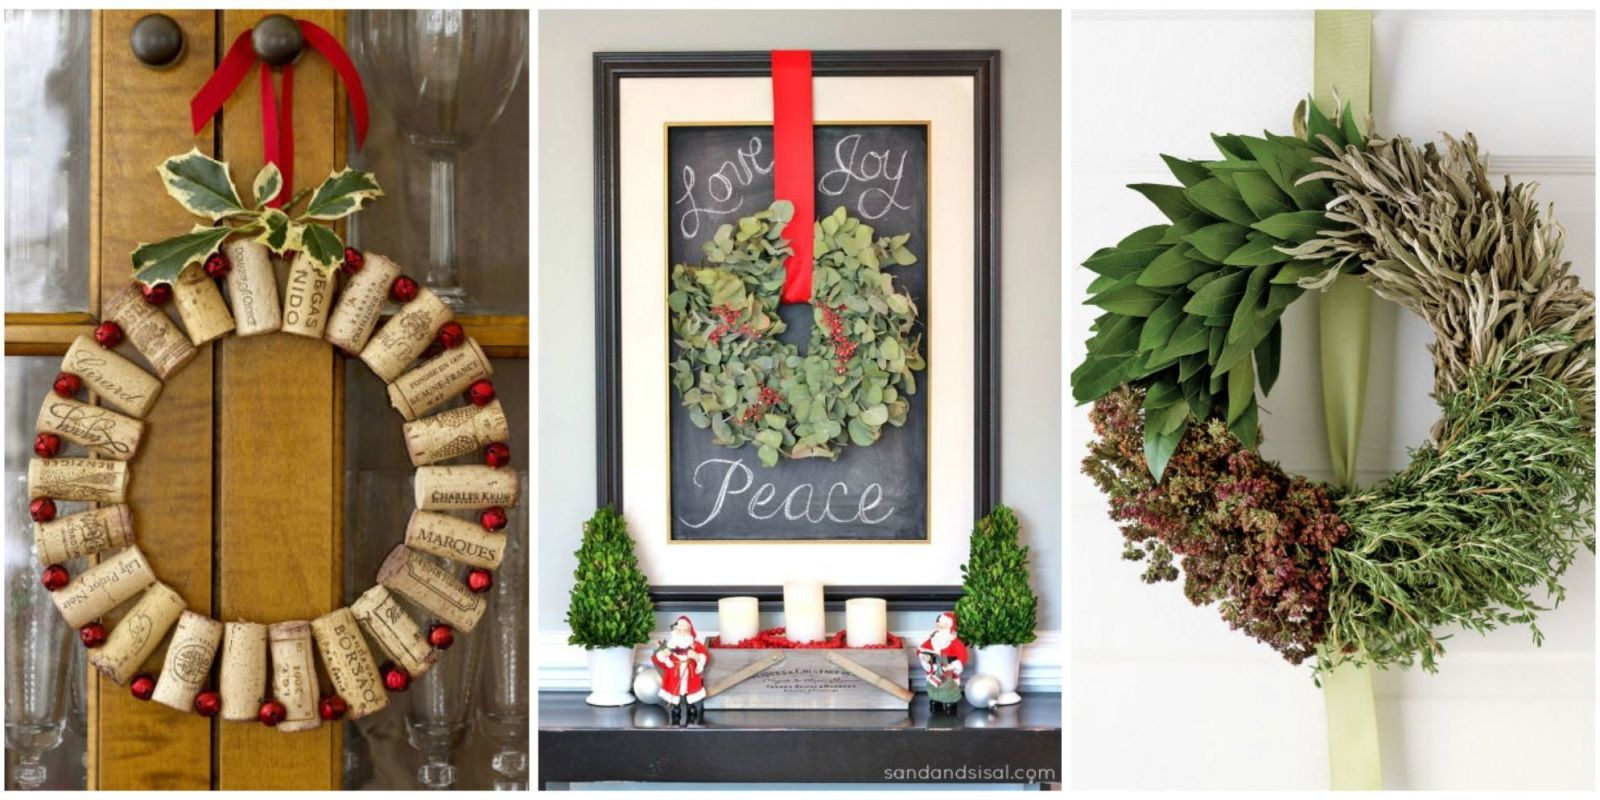 Deck your door and more in Christmas cheer. & 50+ DIY Christmas Wreath Ideas - How To Make Holiday Wreaths Crafts